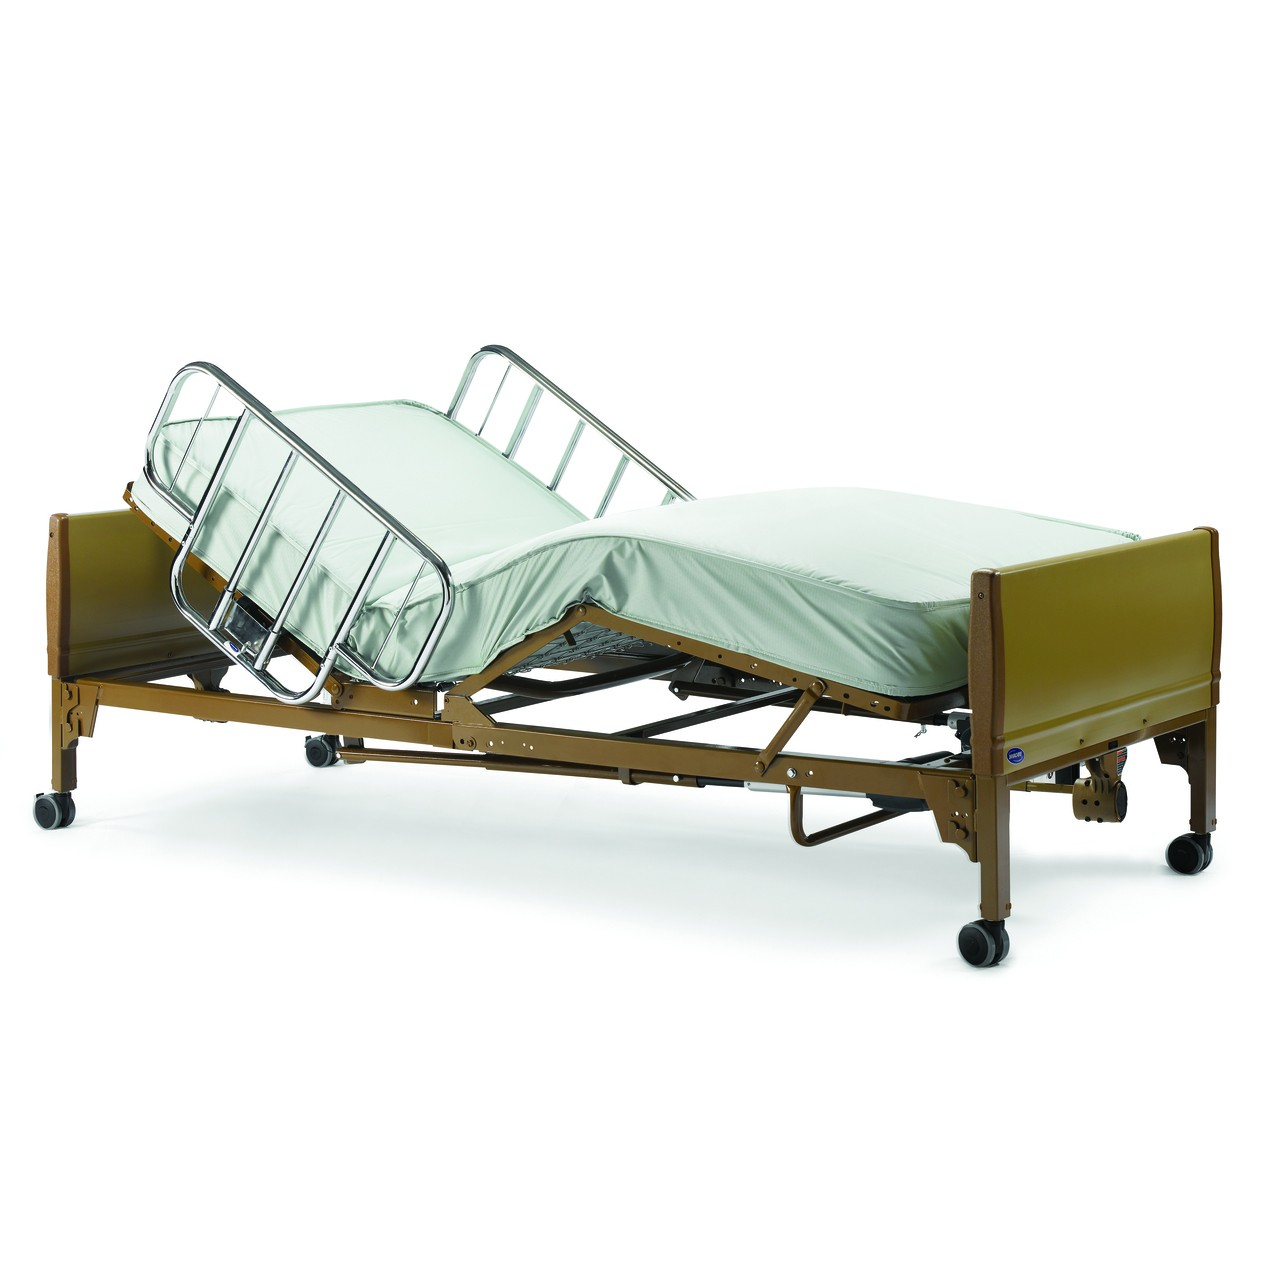 Full-Electric Hospital Bed for Rental